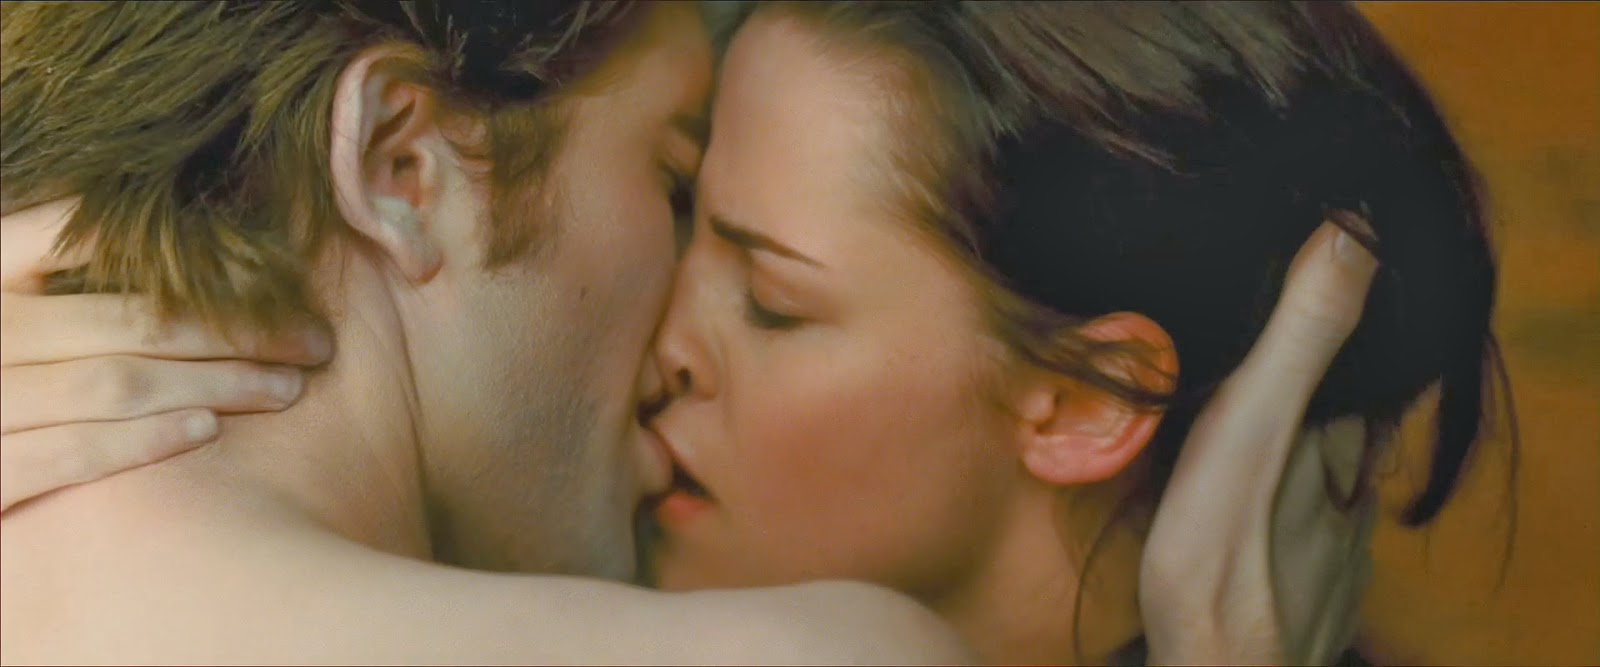 hot kissing image